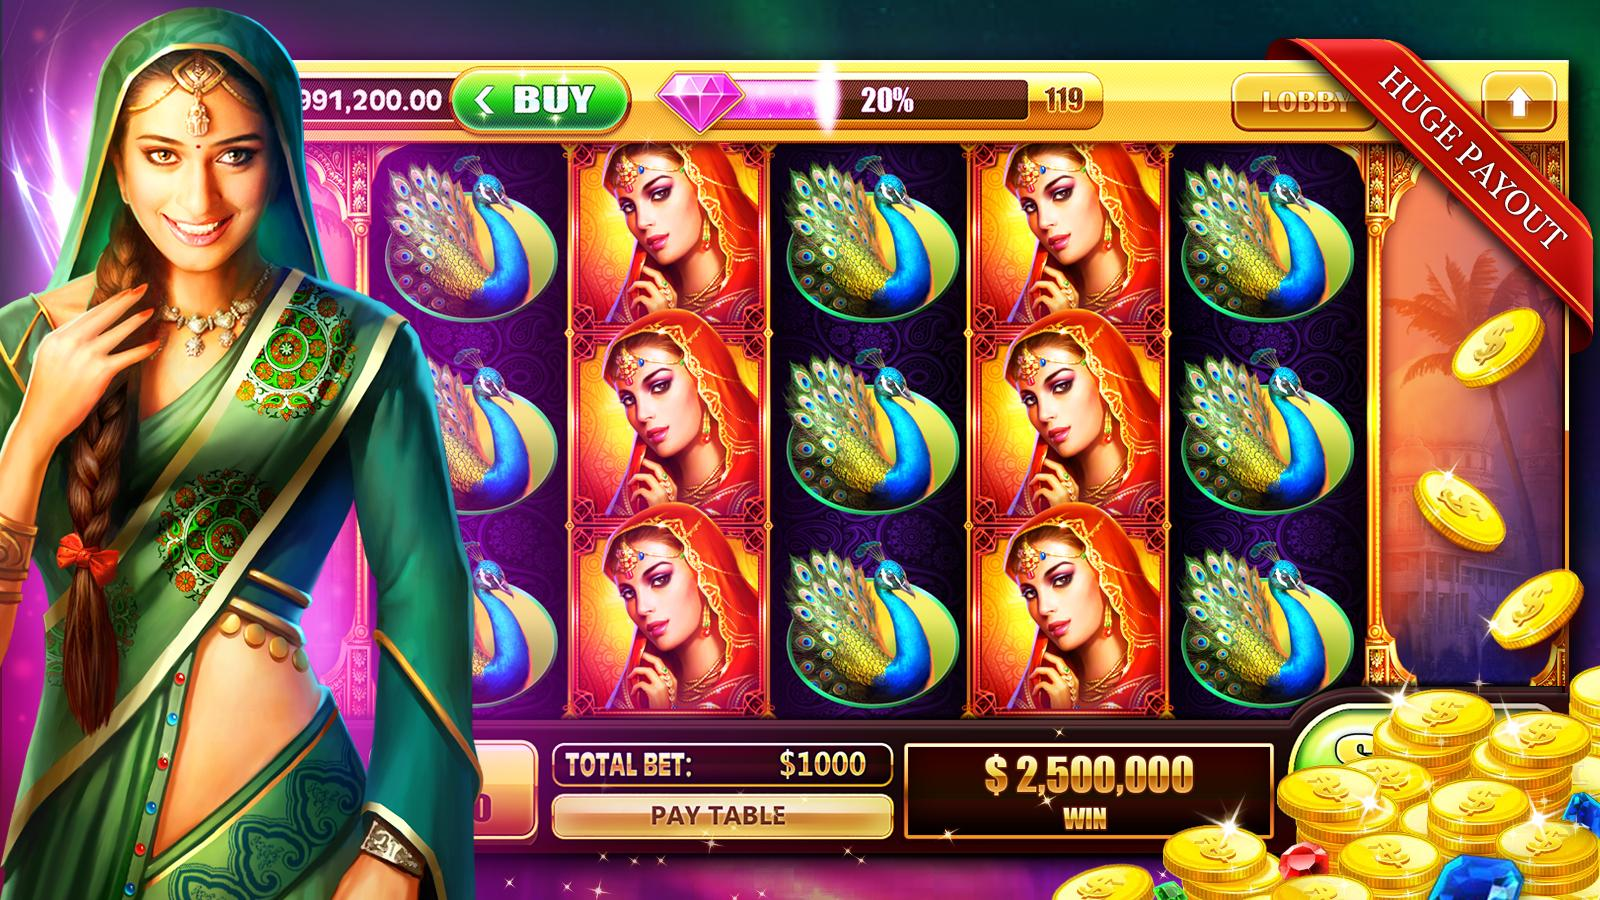 Slot cassino gratis big time gaming - 62017